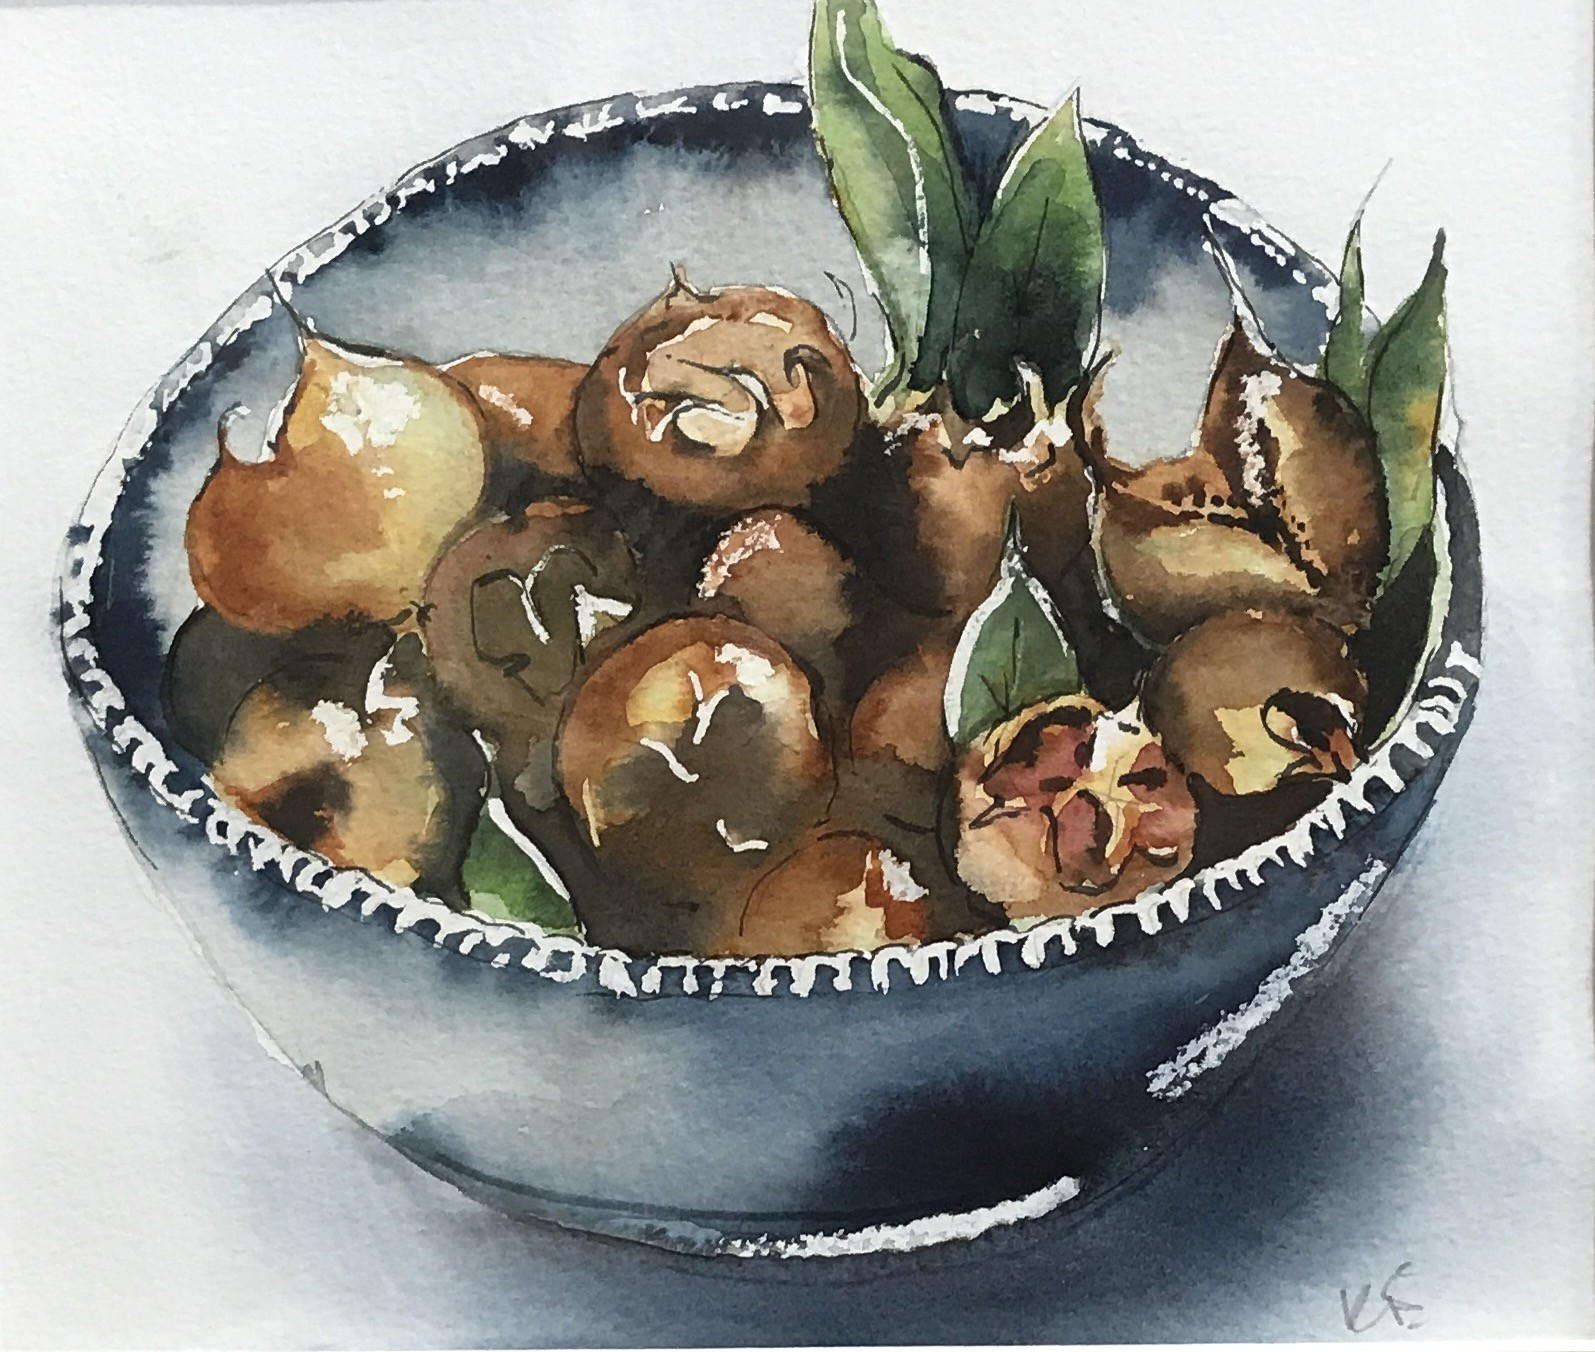 <span class=&#34;link fancybox-details-link&#34;><a href=&#34;/artists/33-kerry-edwards/works/76-kerry-edwards-bowl-of-medlars/&#34;>View Detail Page</a></span><div class=&#34;artist&#34;><strong>Kerry Edwards</strong></div> <div class=&#34;title&#34;><em>Bowl of Medlars</em></div> <div class=&#34;medium&#34;>Watercolour (framed)</div> <div class=&#34;dimensions&#34;>19 x 22 cm</div><div class=&#34;price&#34;>£130.00</div>